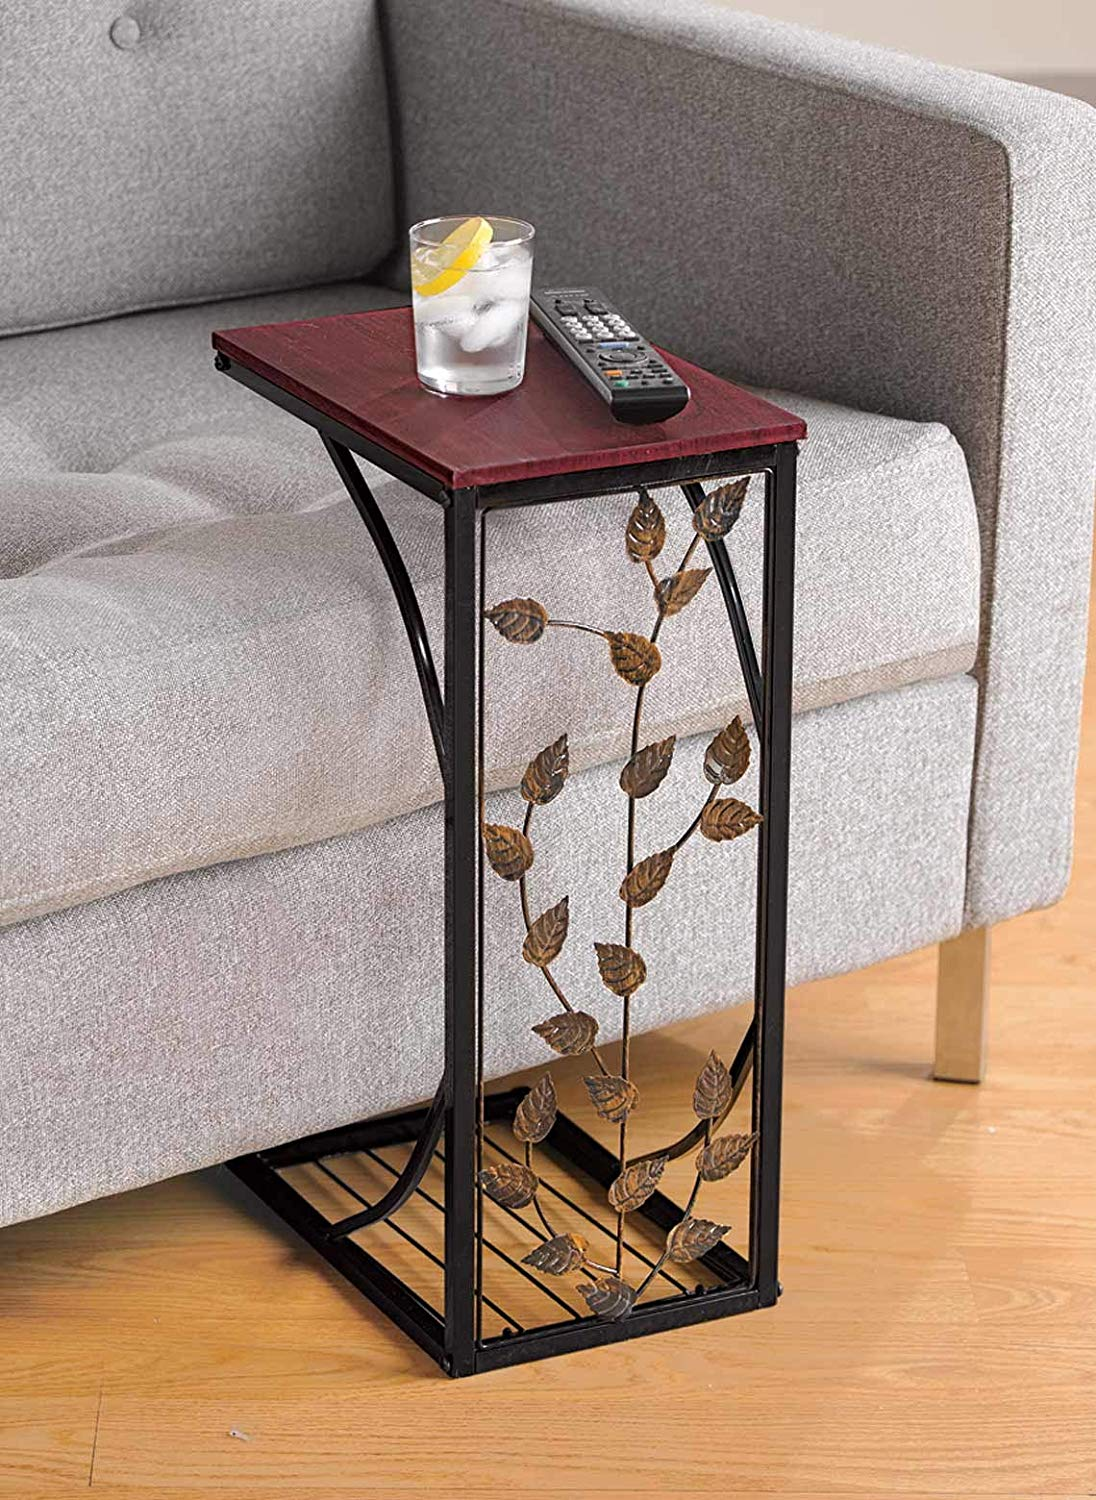 sofa side and end table small metal dark brown wood tables top with leaf design perfect for your living room slides chair recliner keep real leather set dog crate frame legends